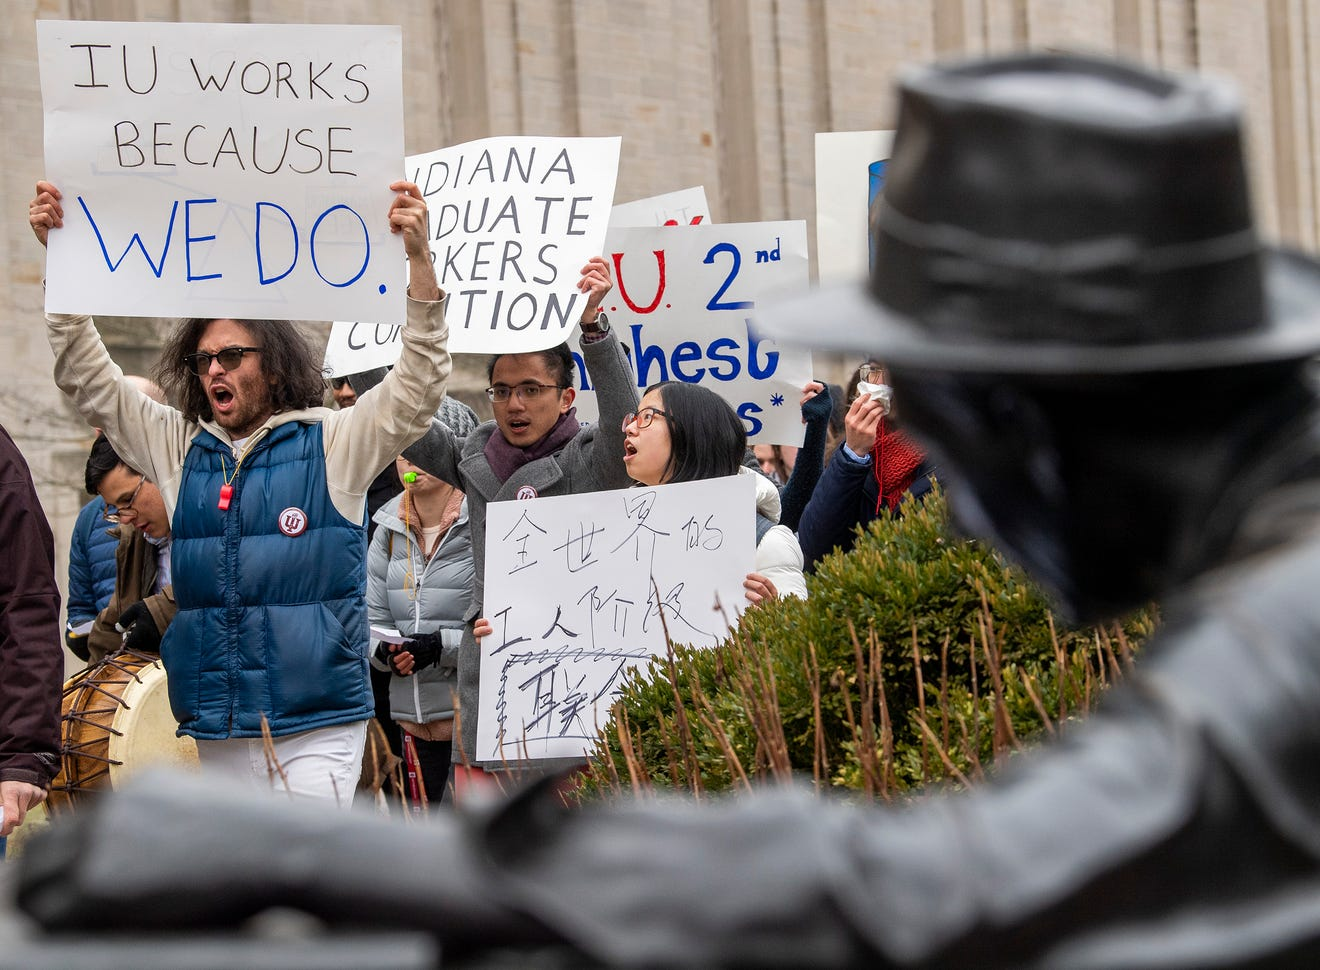 """Alex Goodlad, a member of the Indiana Graduate Workers Coalition, carries a sign reading """"IU works because WE DO."""" towards the Wells Library during a Jan. 28, 2020, protest."""